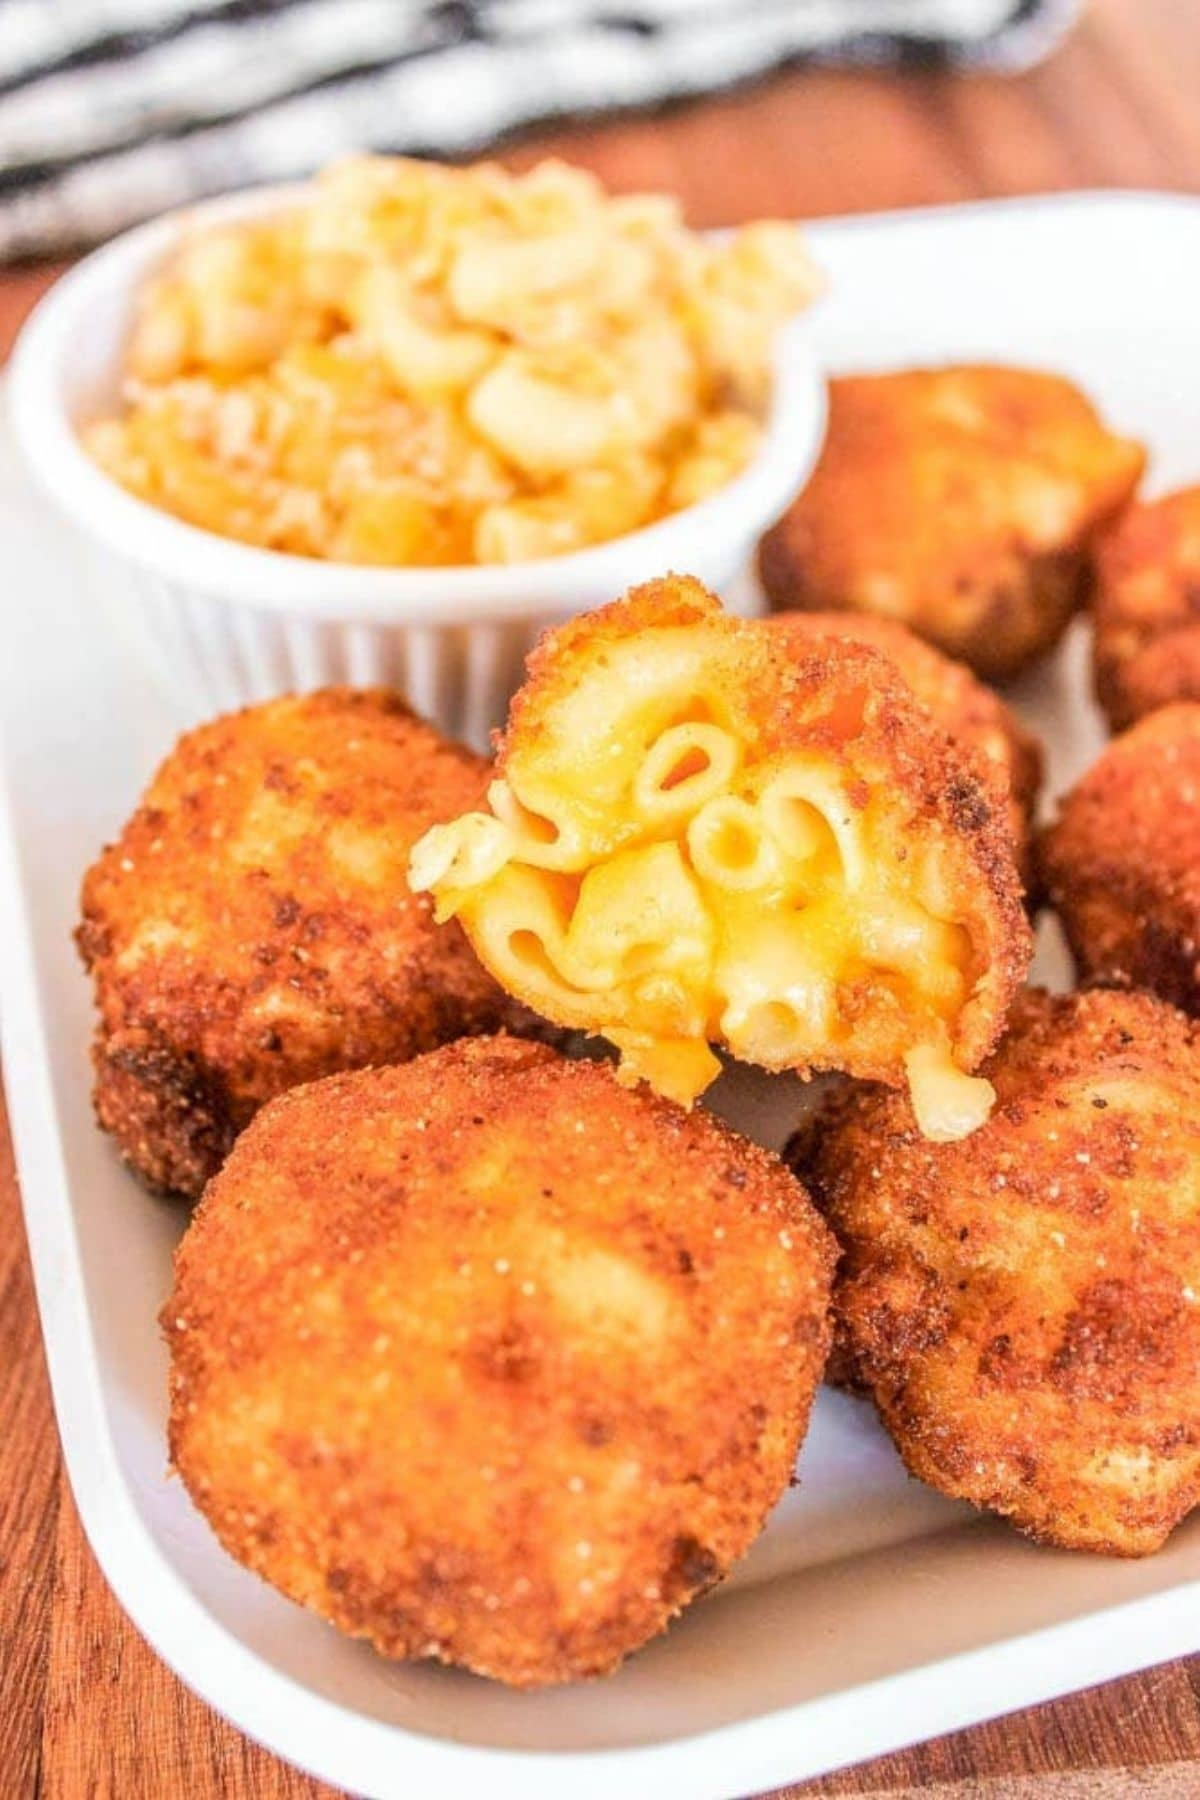 Macaroni and cheese bites on plate